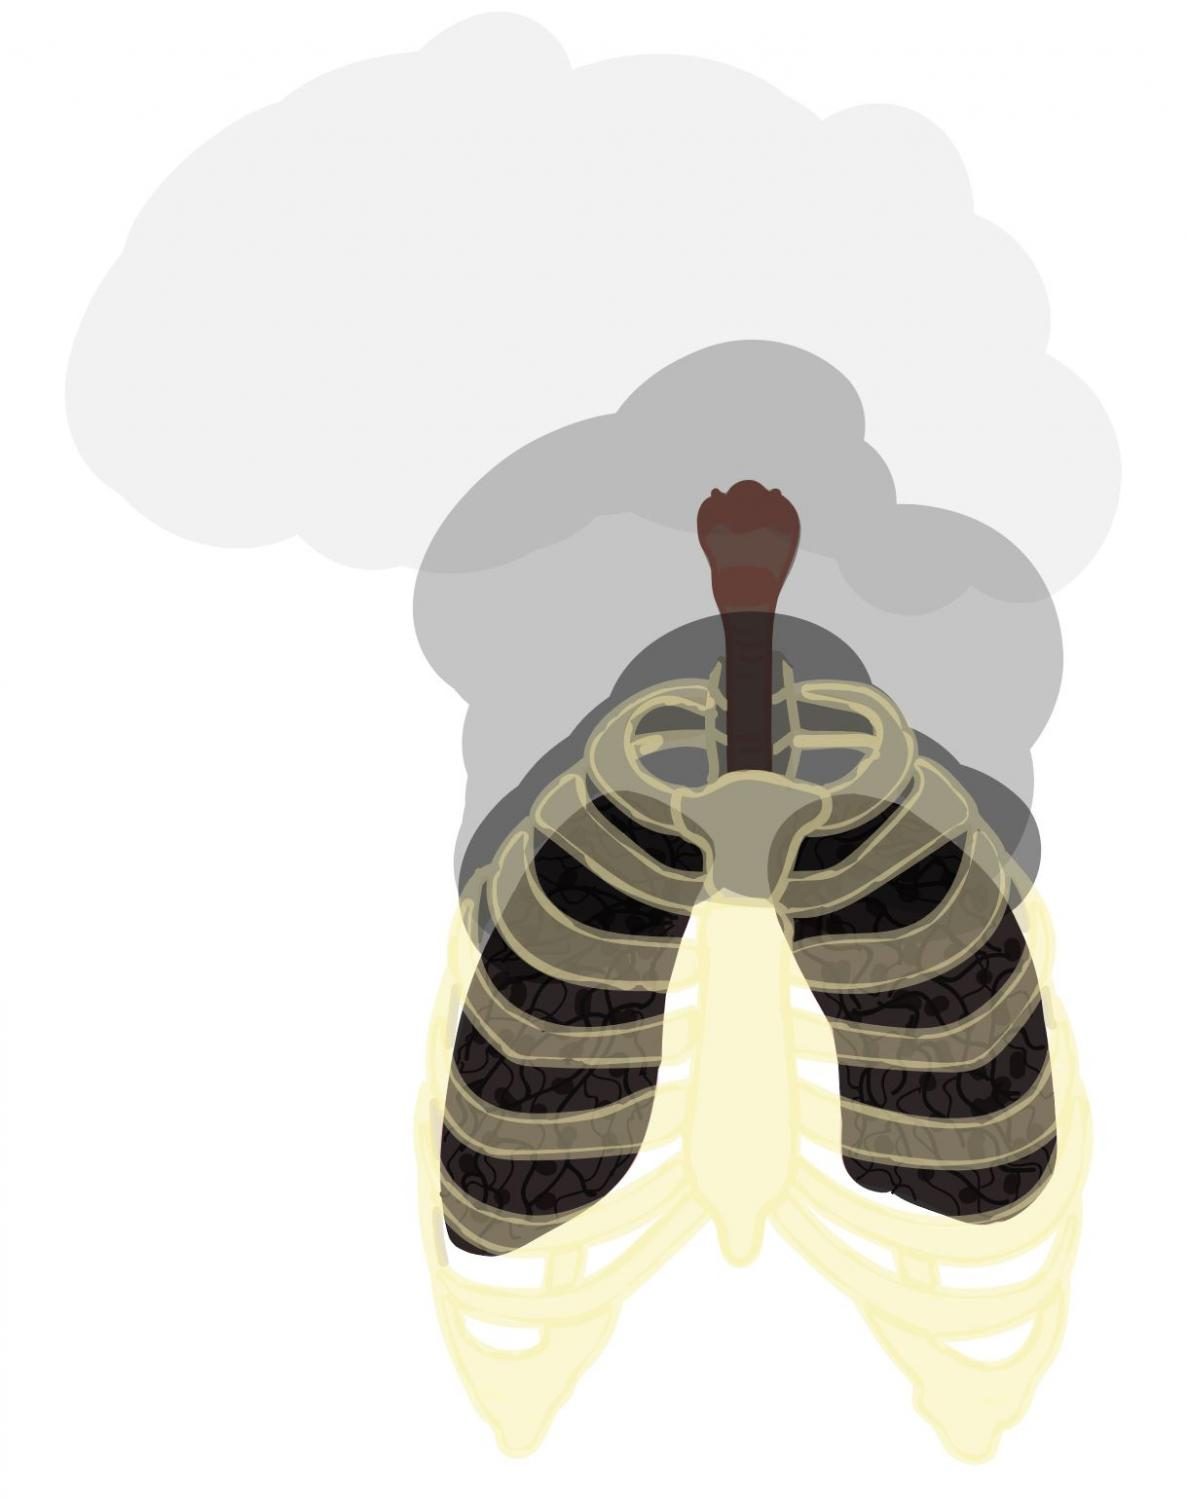 This is a visual representation of 'popcorn lung' after vaping.